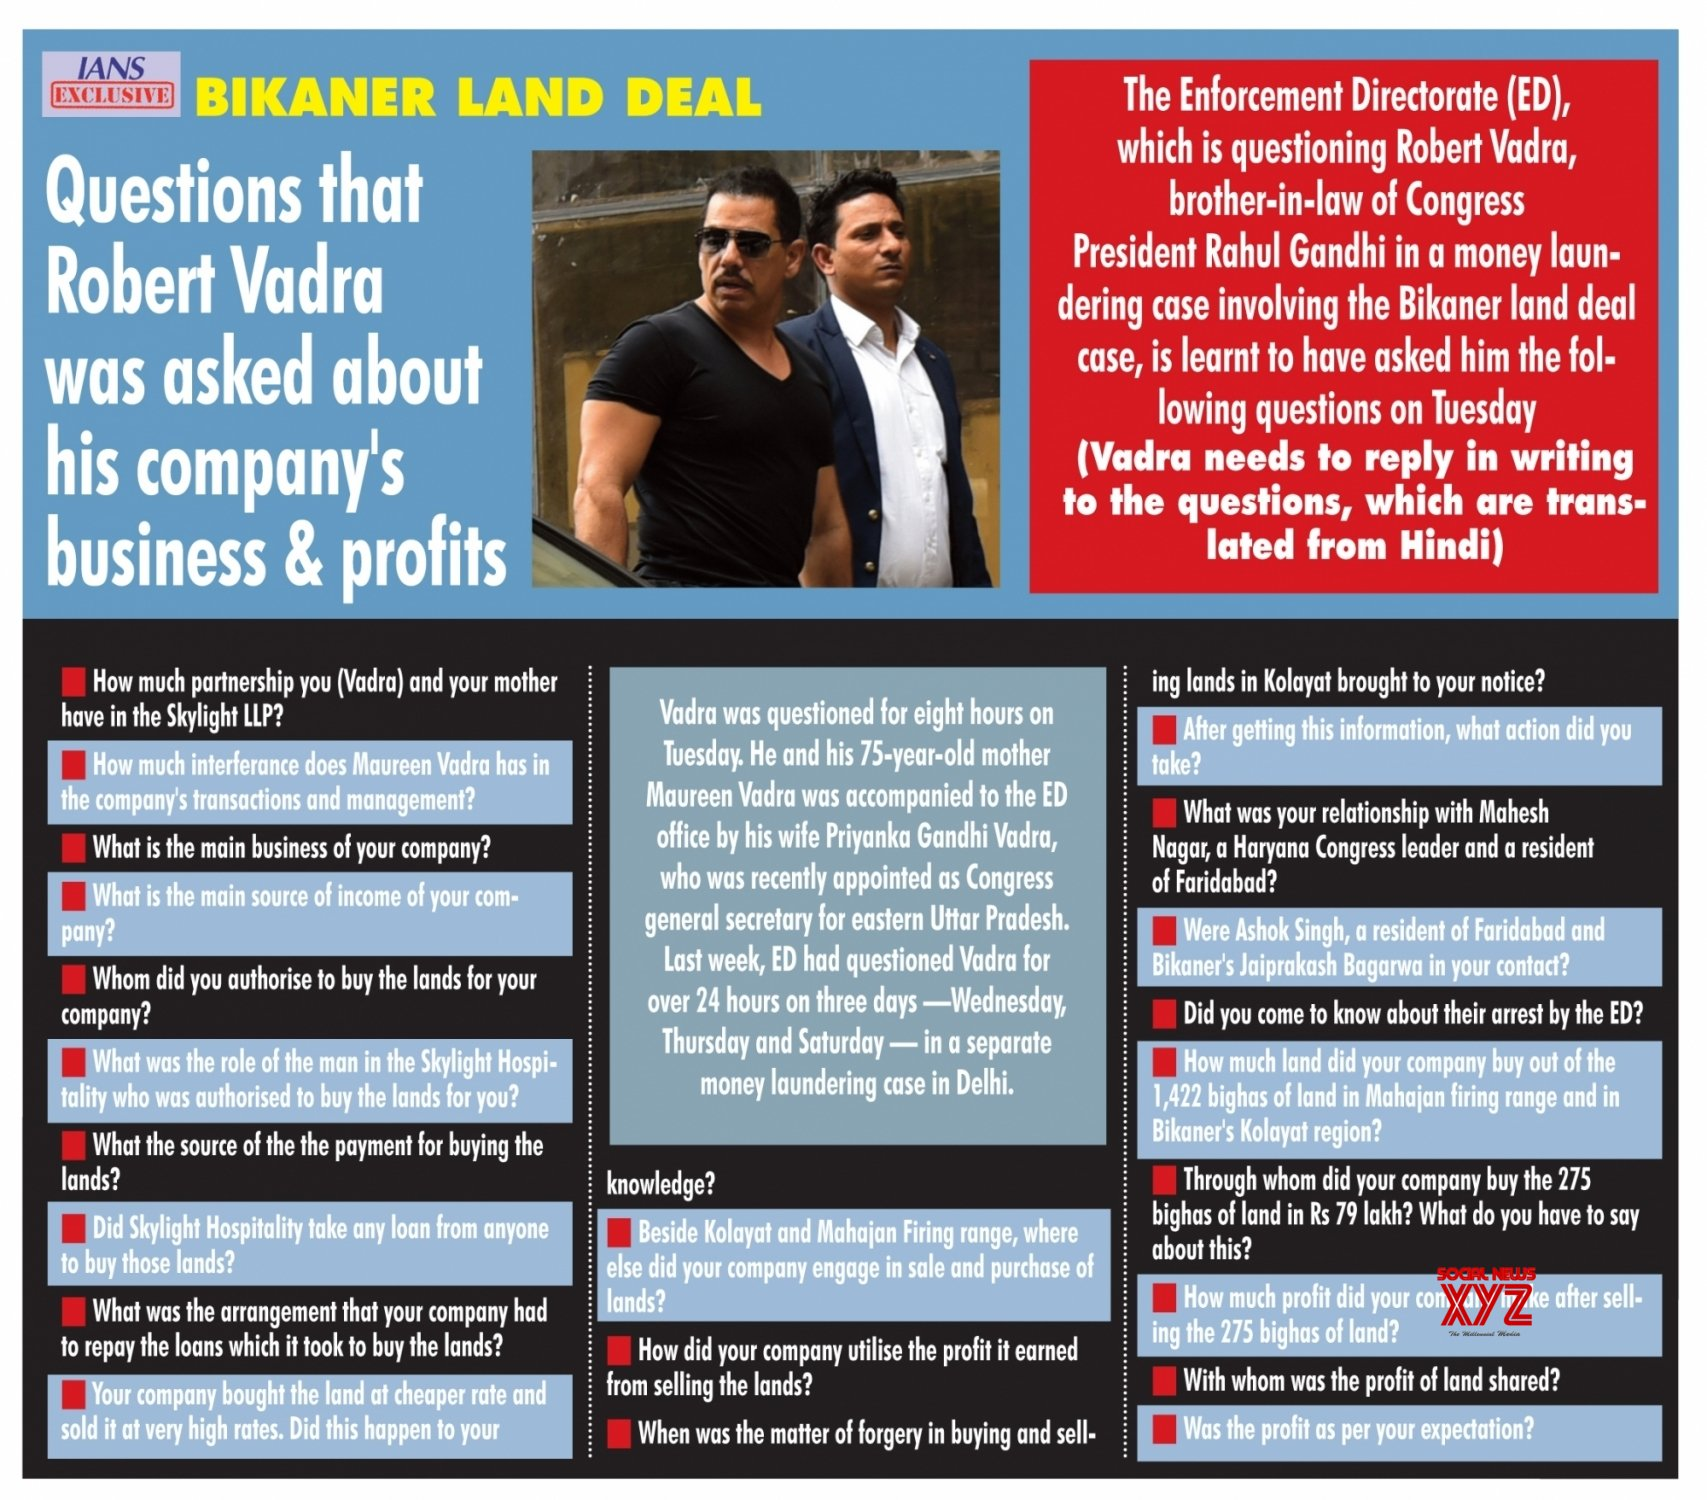 Bikaner land deal: Questions that Robert Vadra was asked about his company's business and profits